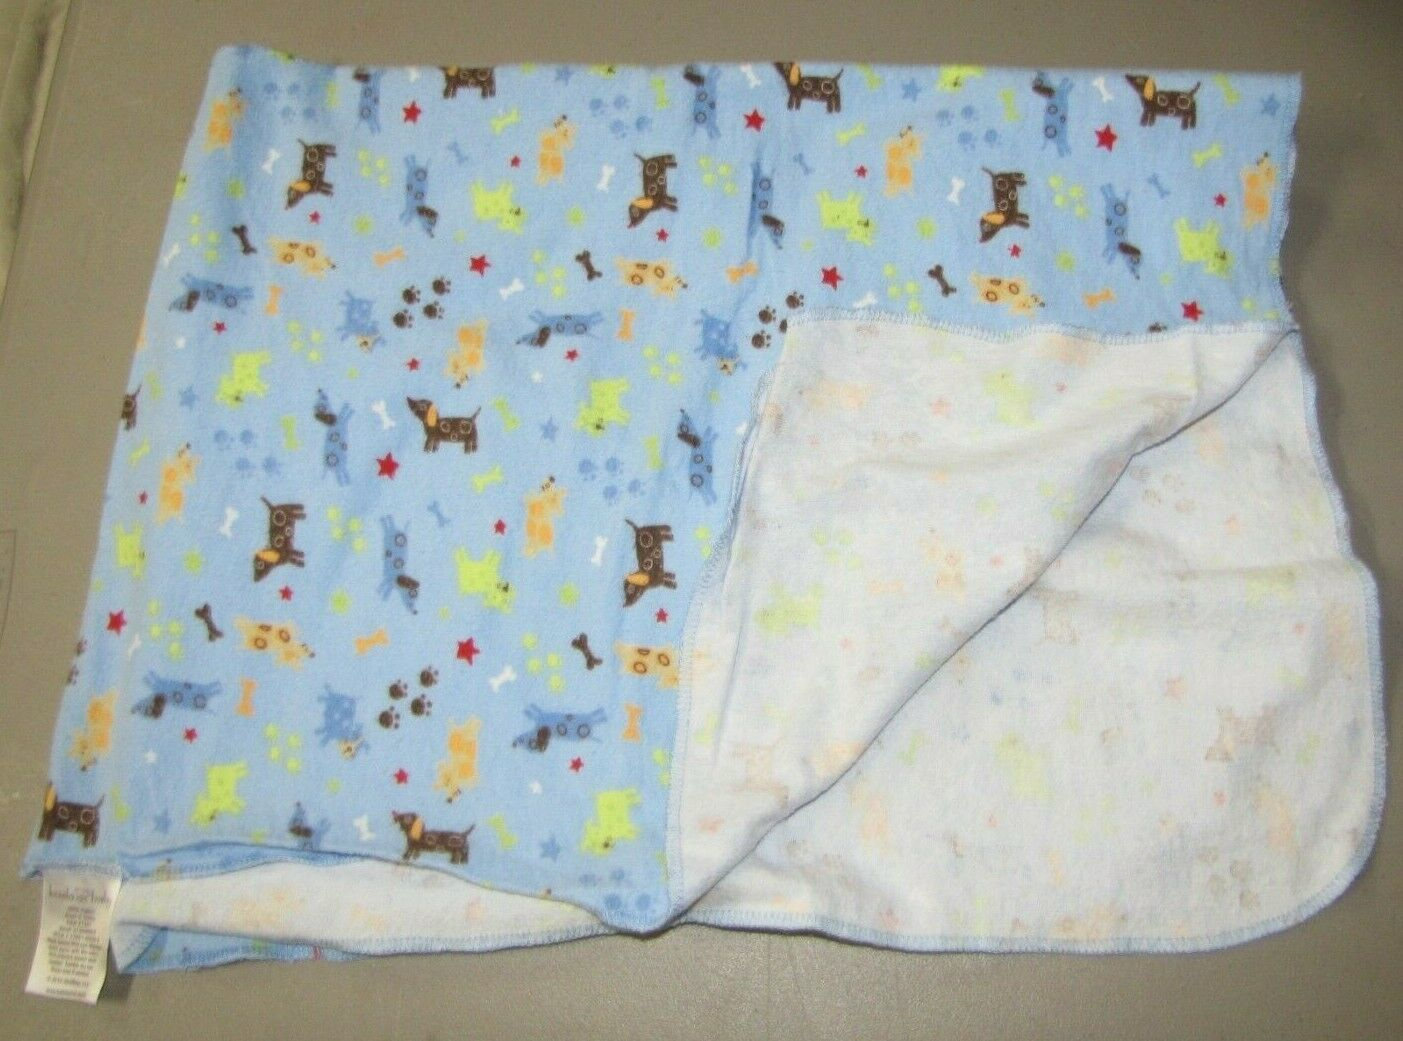 Koala Baby Blue Cotton Flannel Dog Puppy Receiving Swaddle Blanket - $19.79